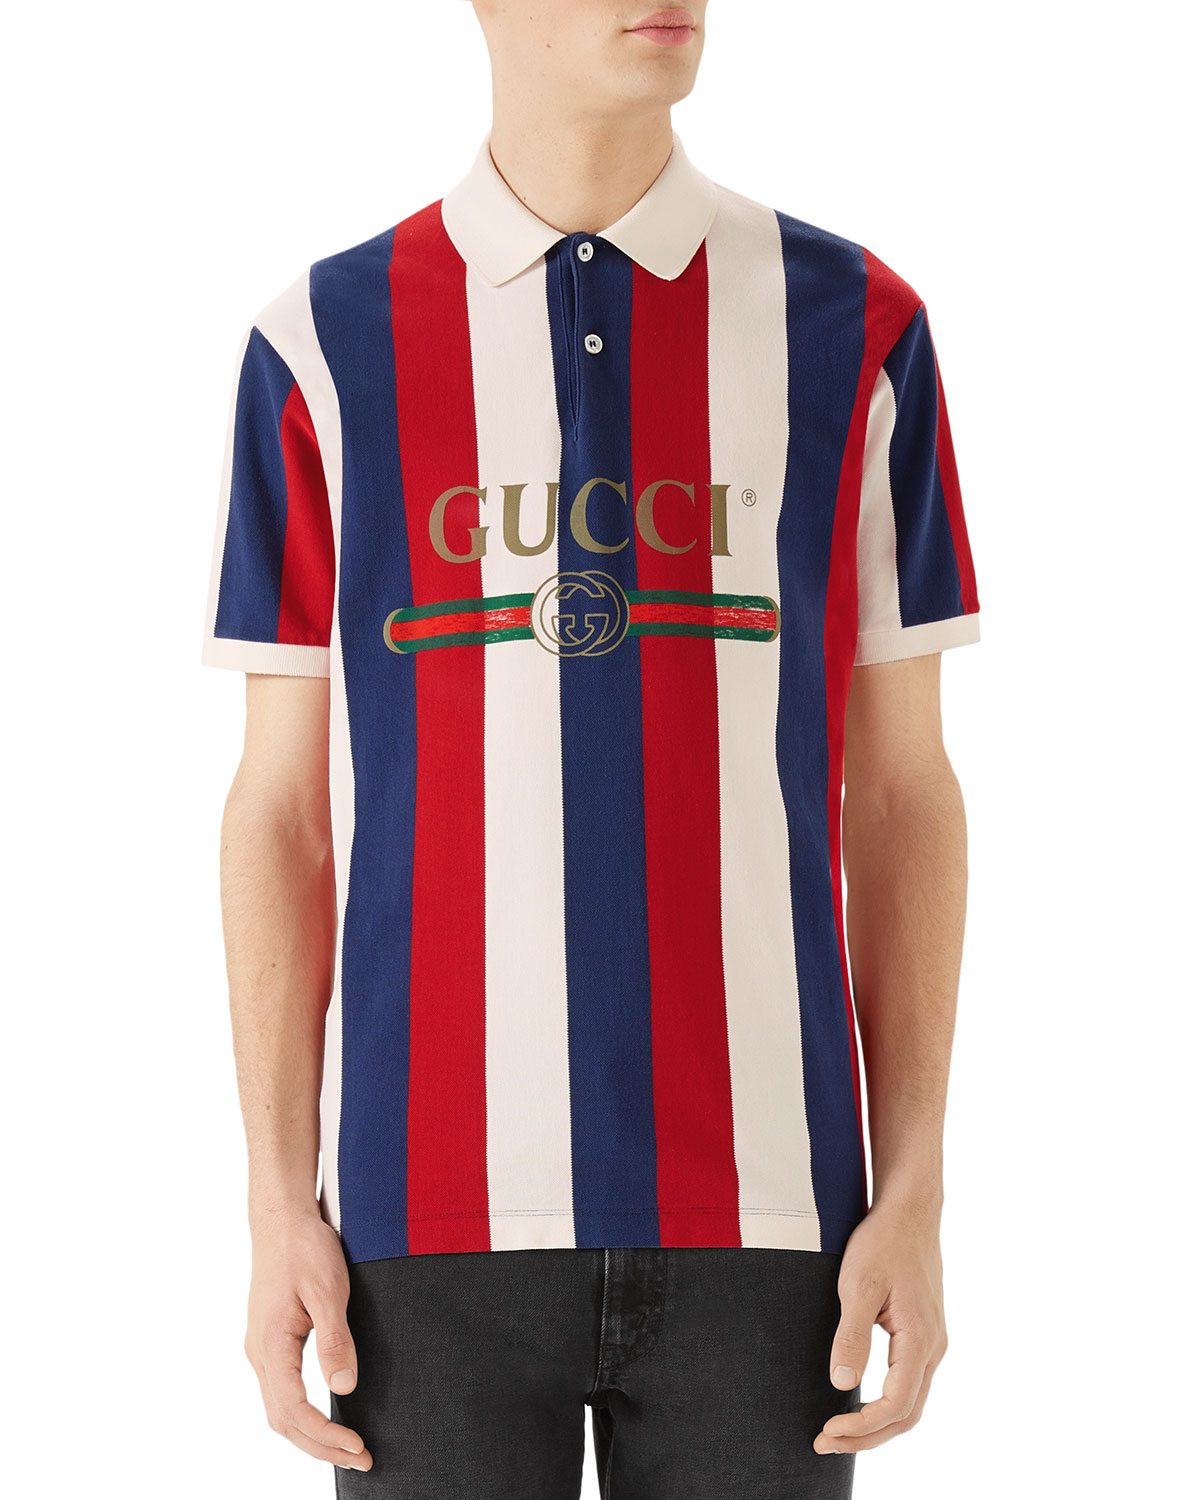 0f542df0ff5 Gucci Men s Striped Pique Polo Shirt